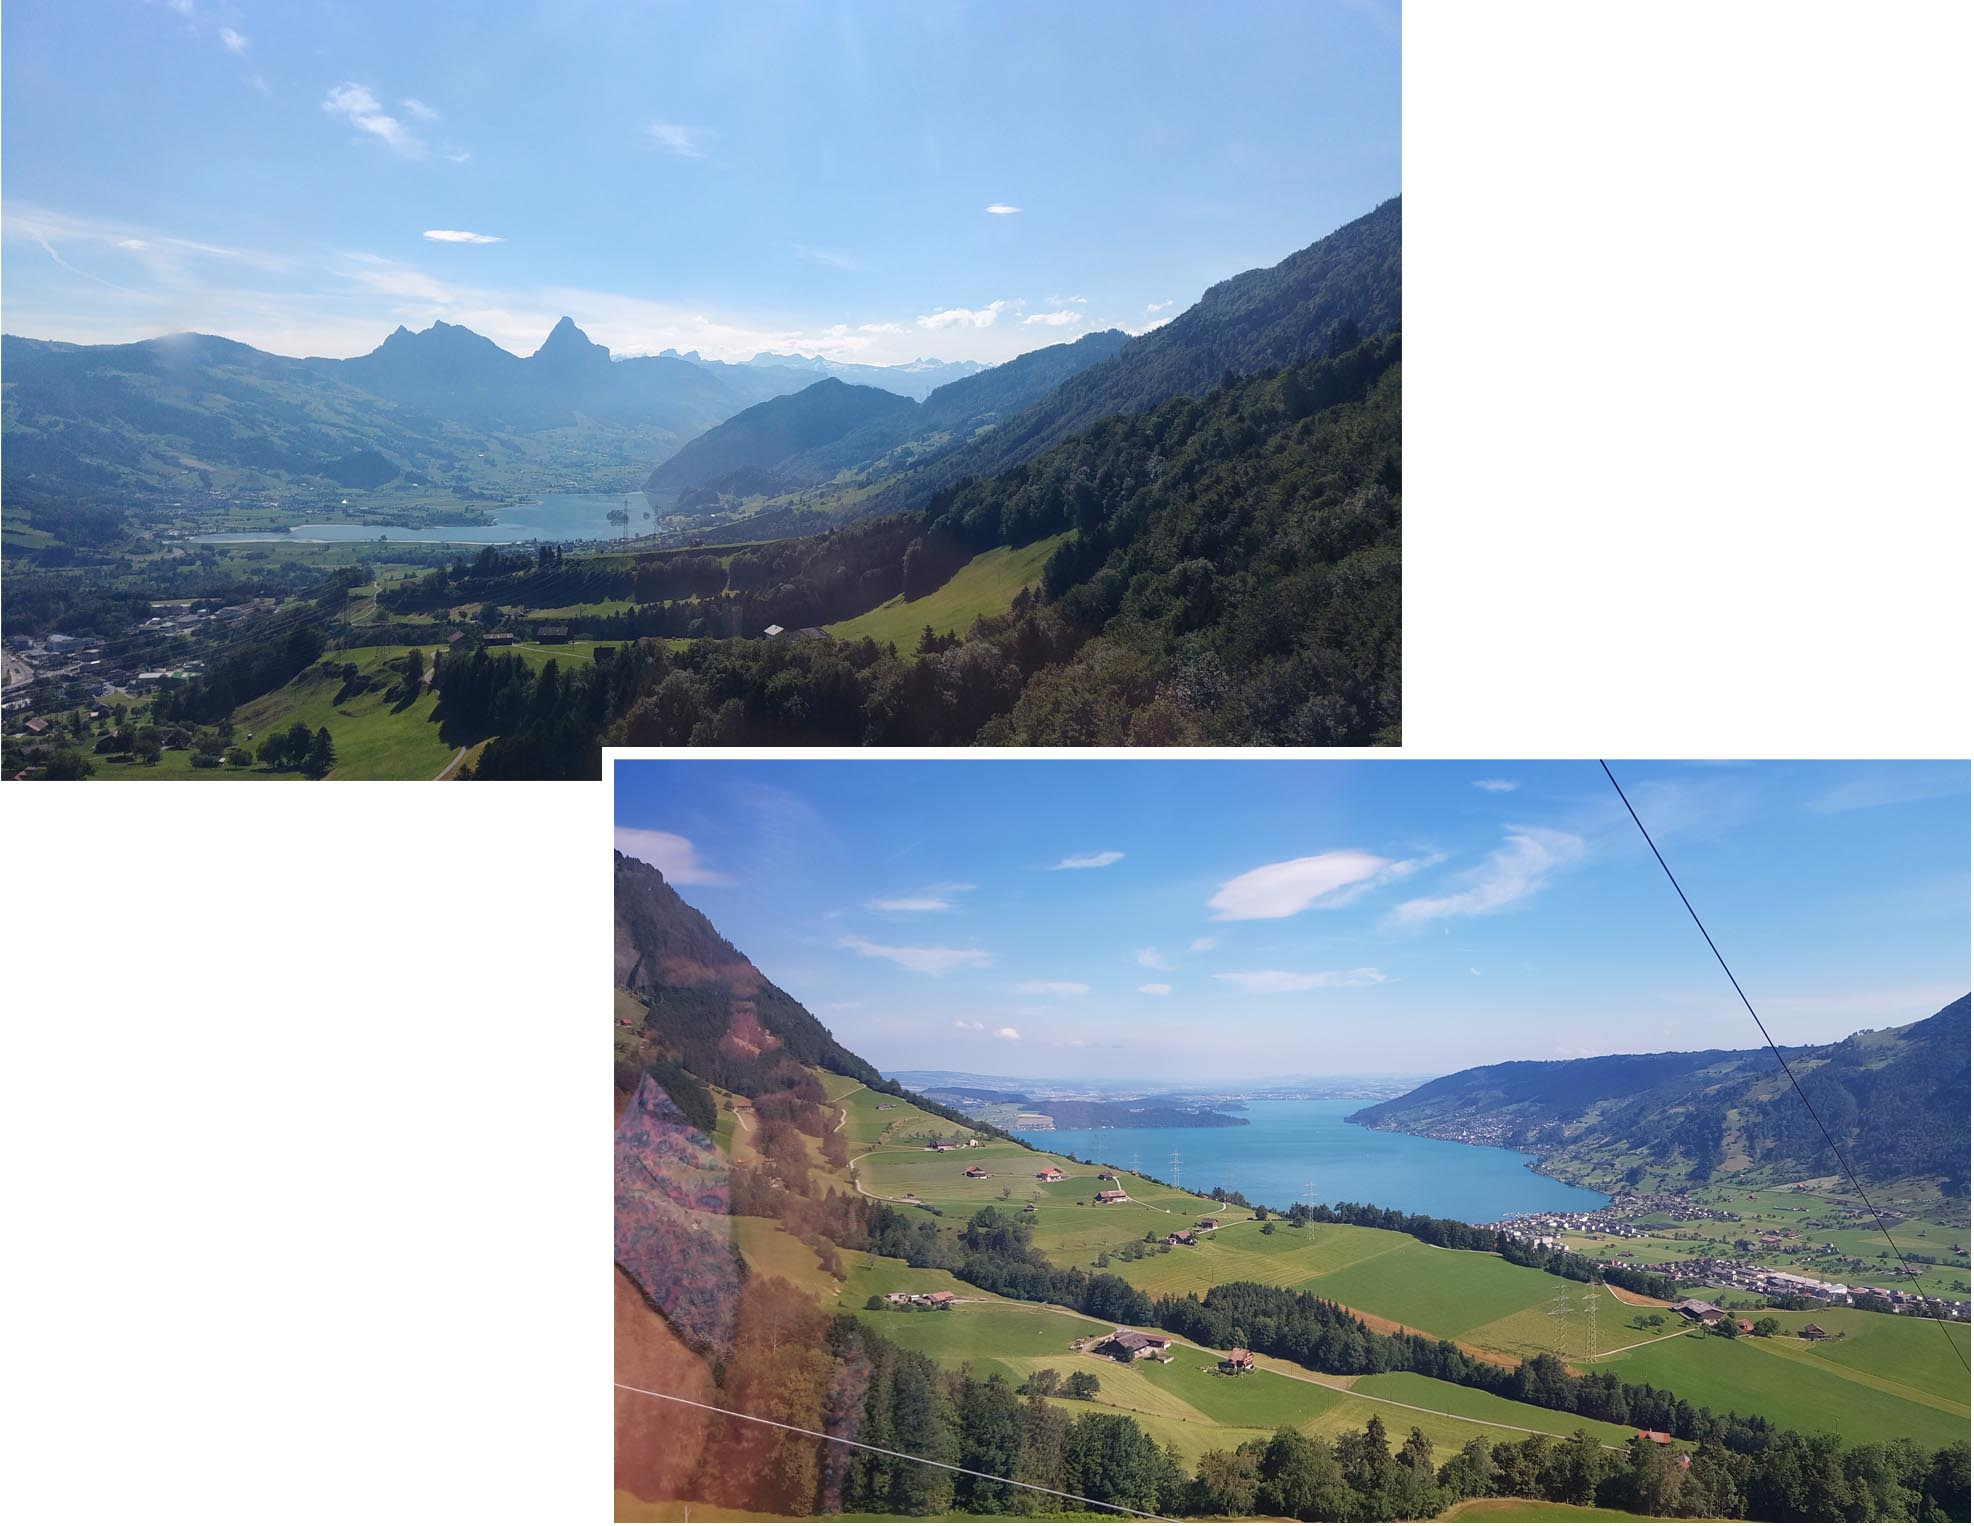 View of Lake seen on the cable car ride